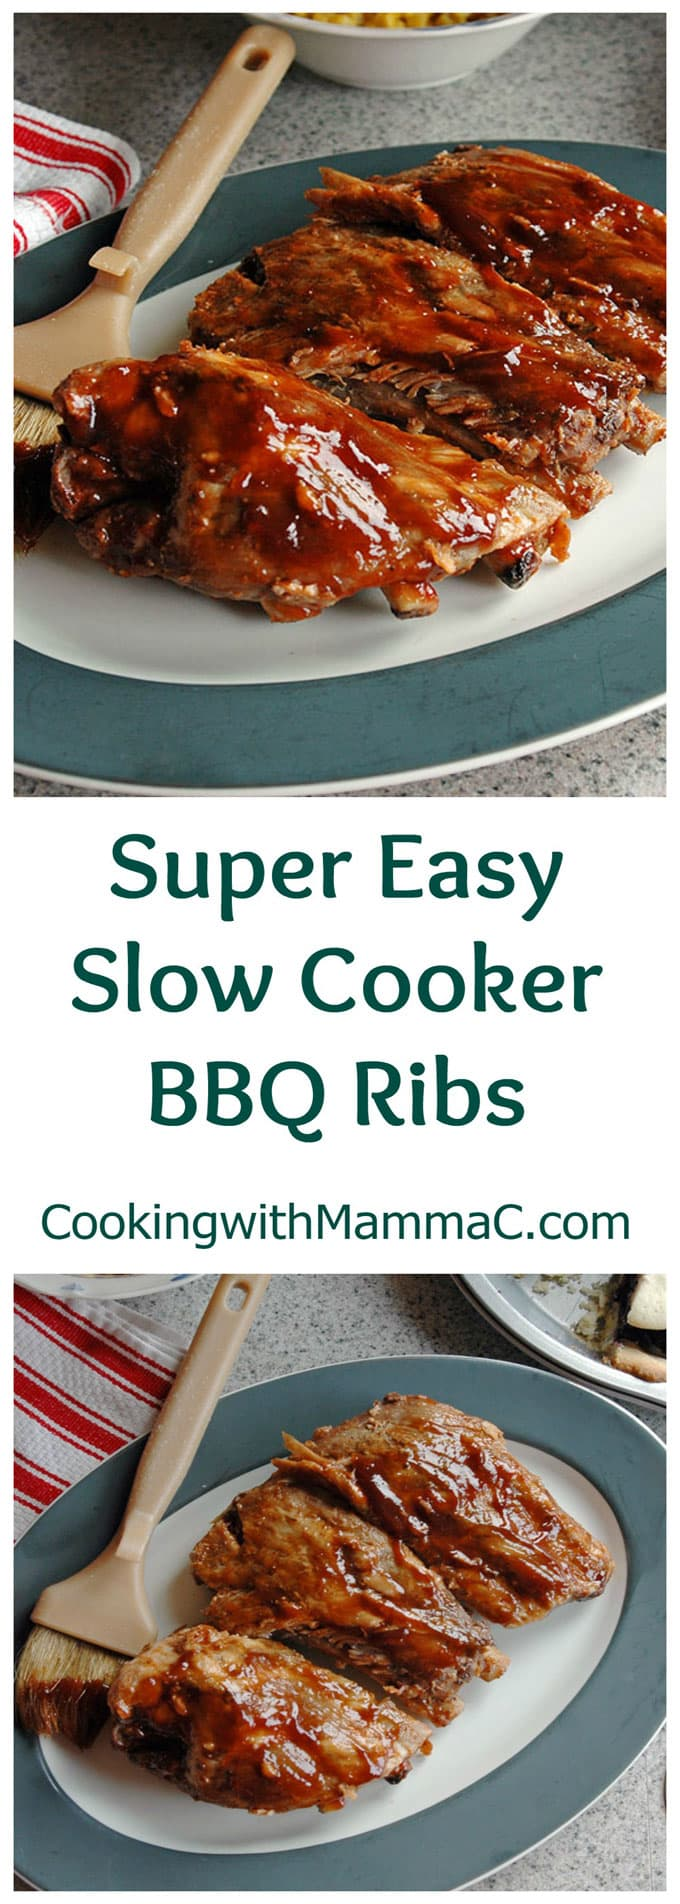 two photos of Super Easy Slow Cooker BBQ Ribs